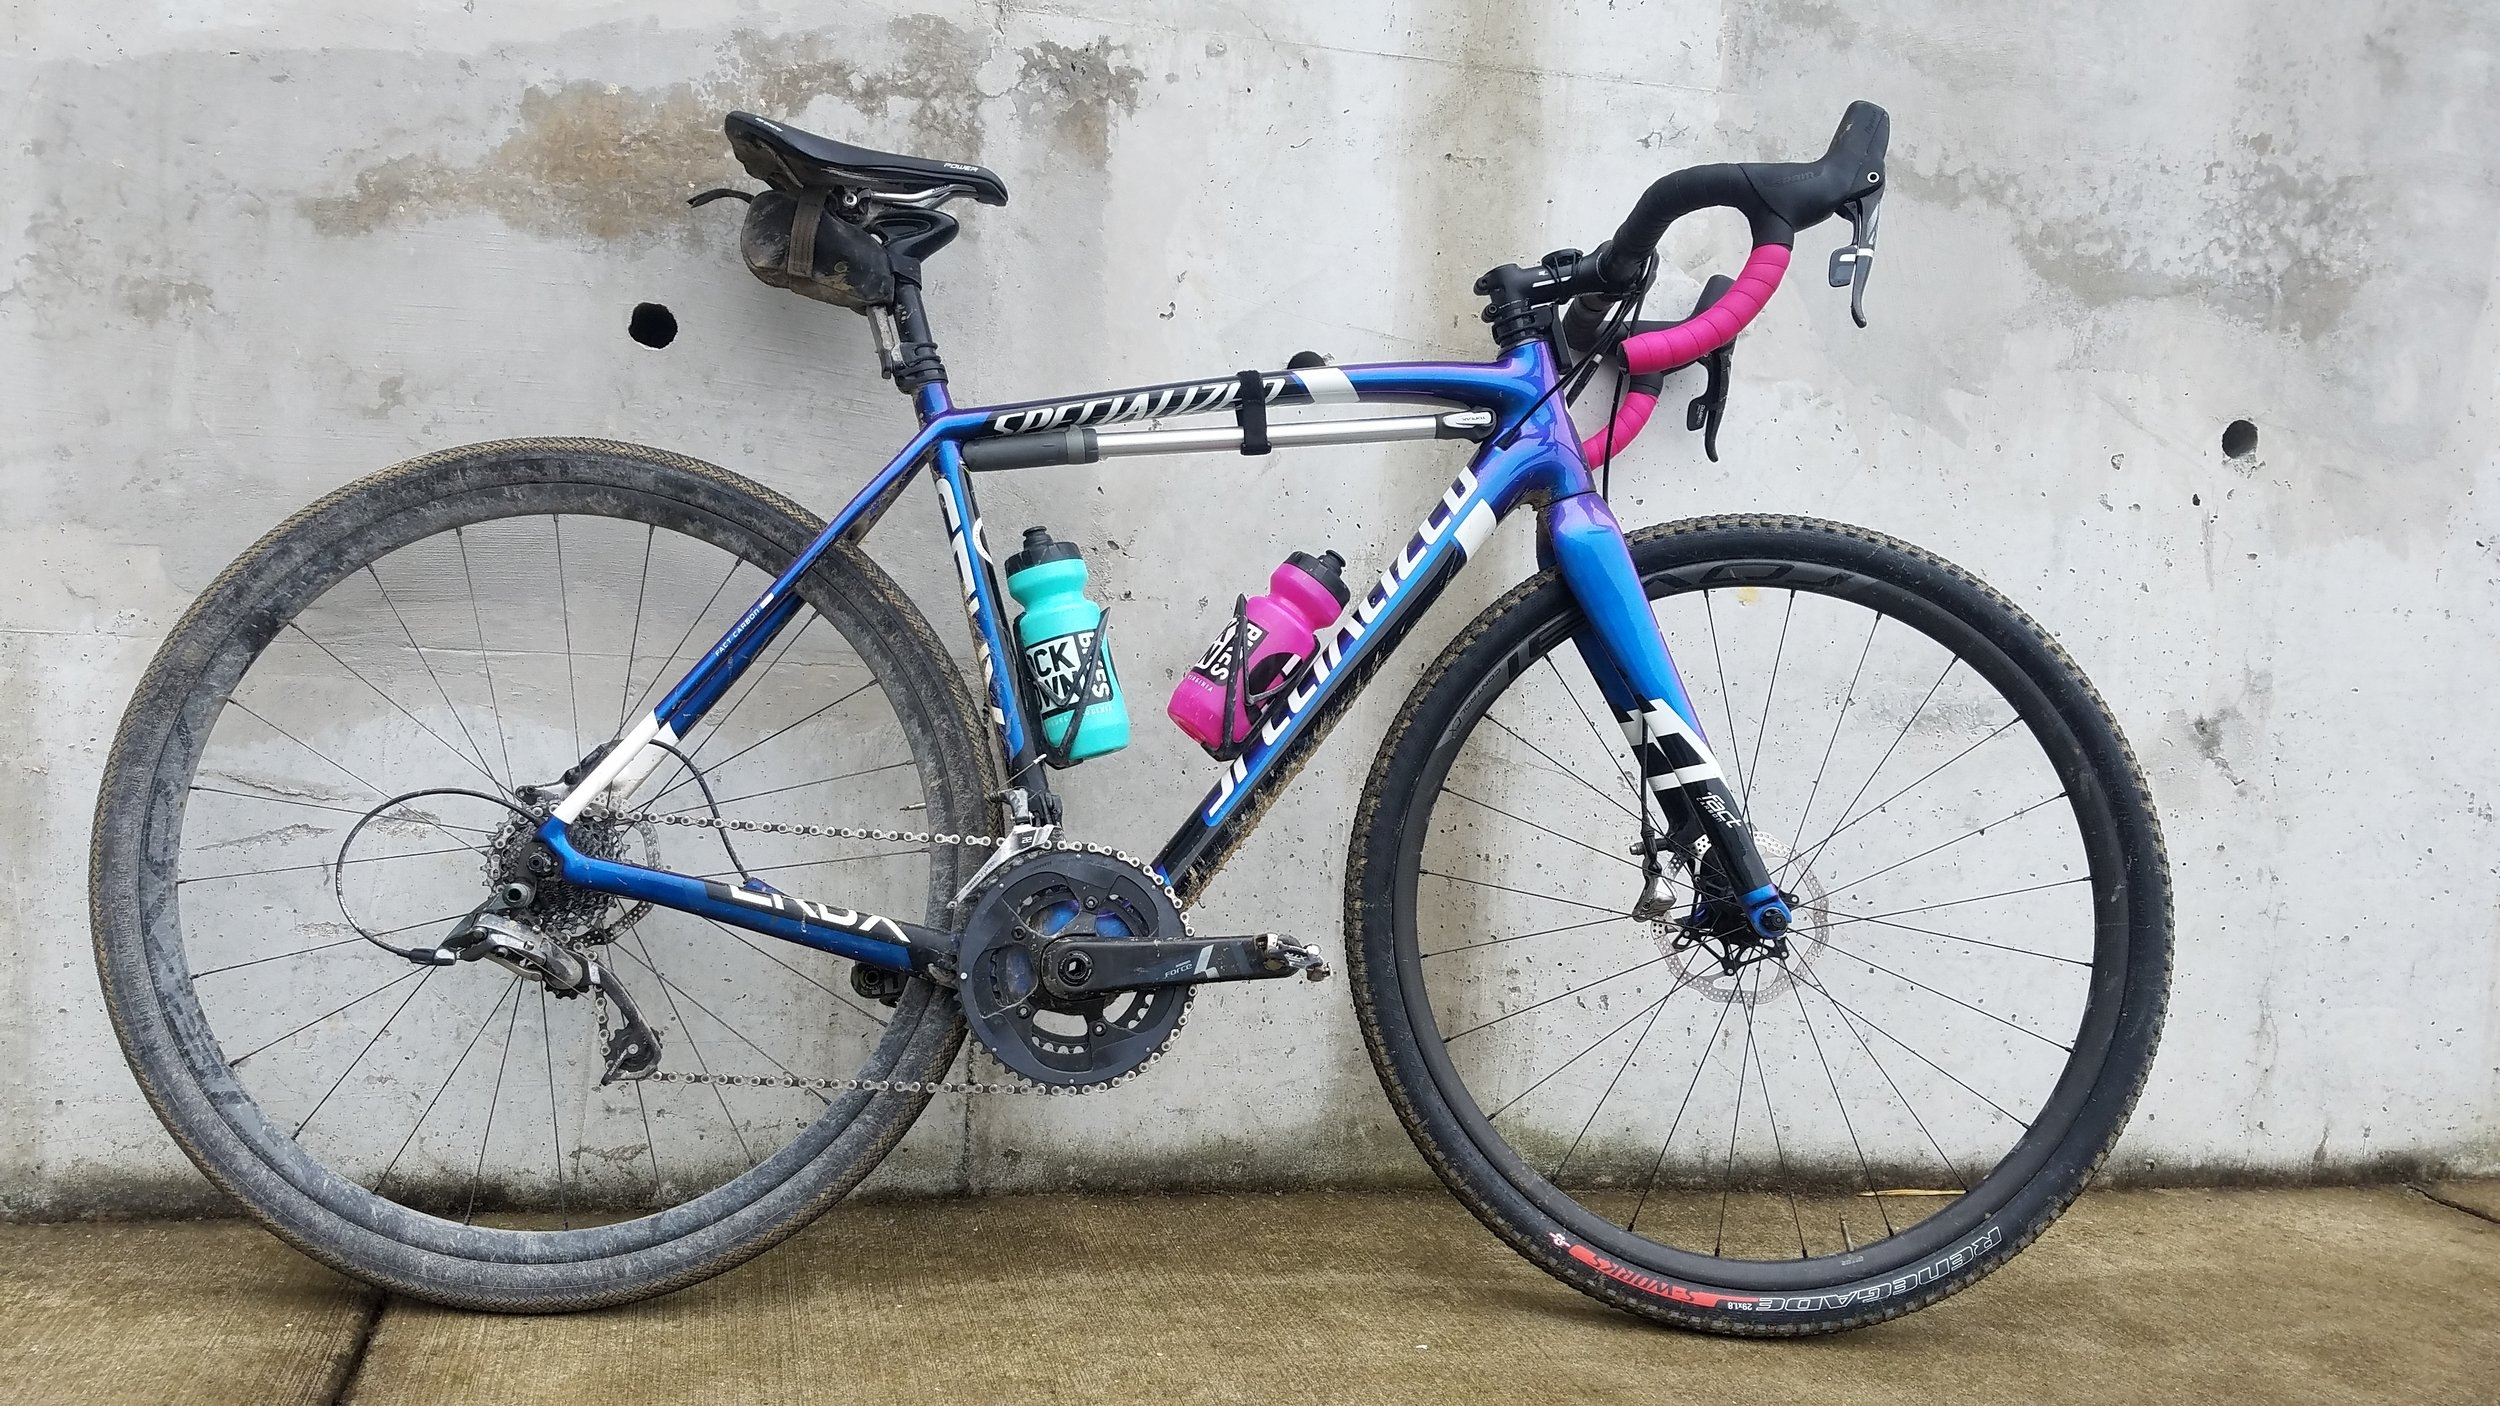 We call this bike the Blueberry